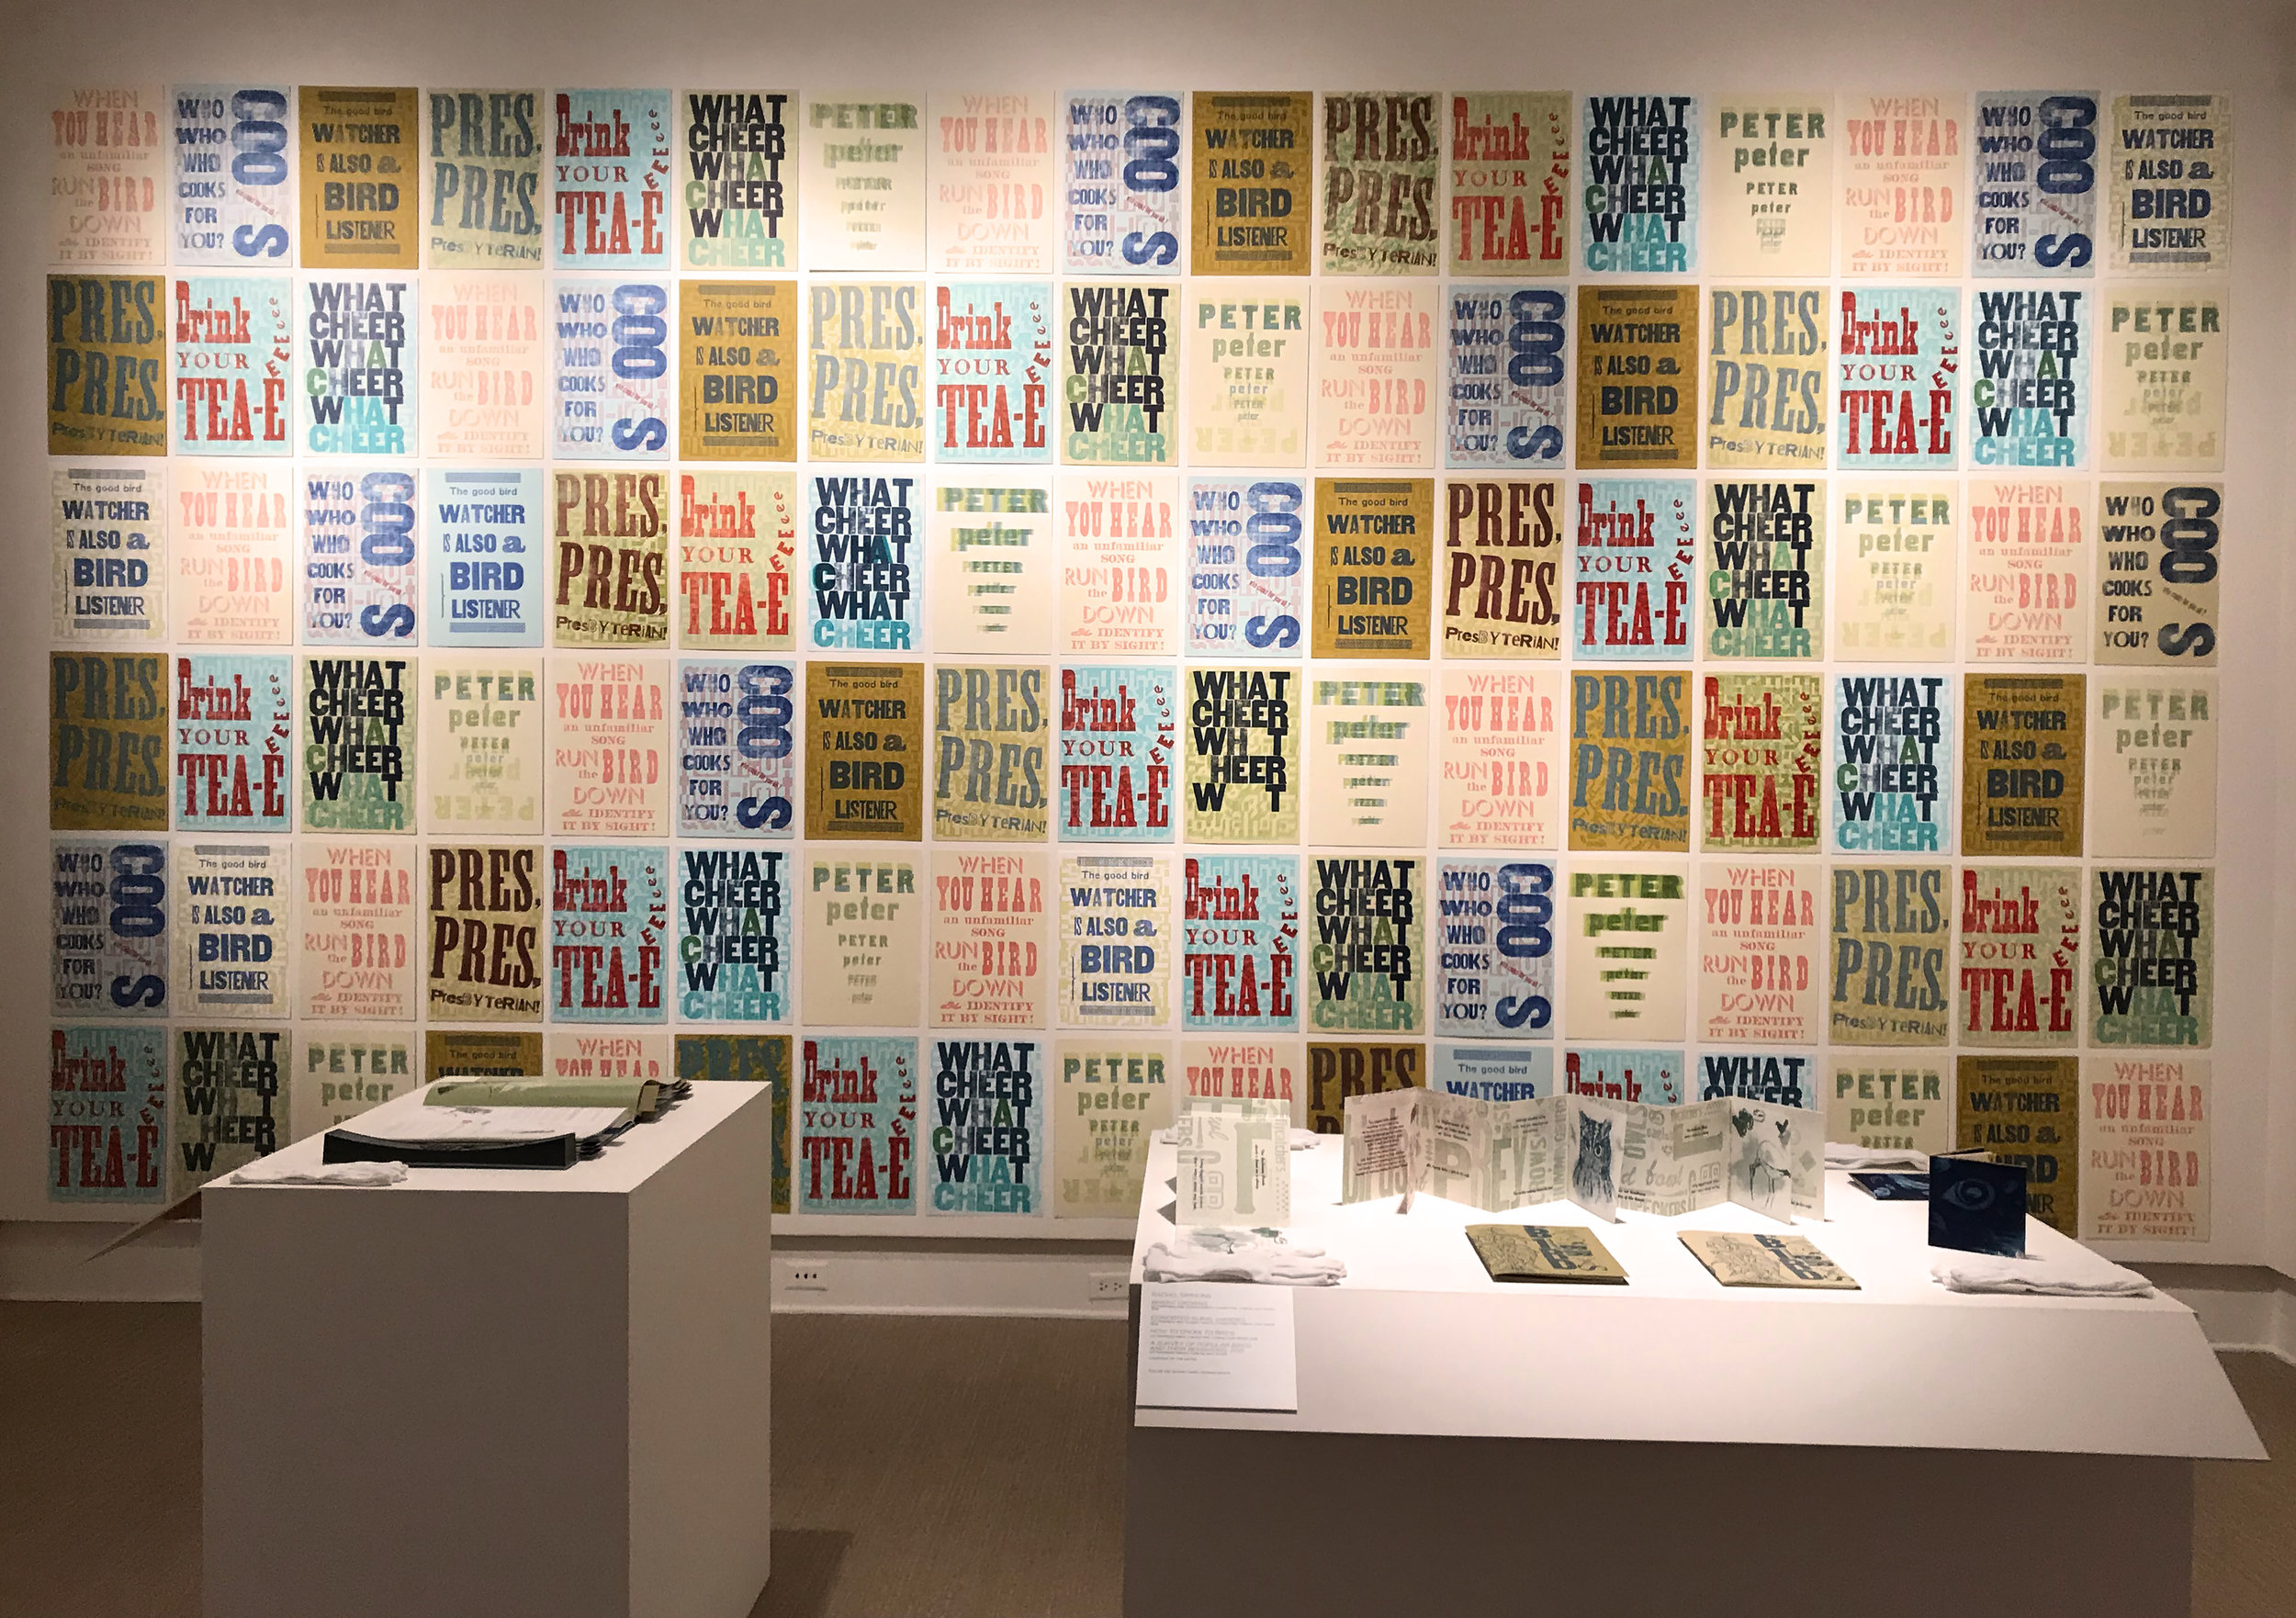 Bird Song Broadsides and various artist's books installed at the Cornell Fine Arts Museum, April 2018, photo by Rachel Simmons